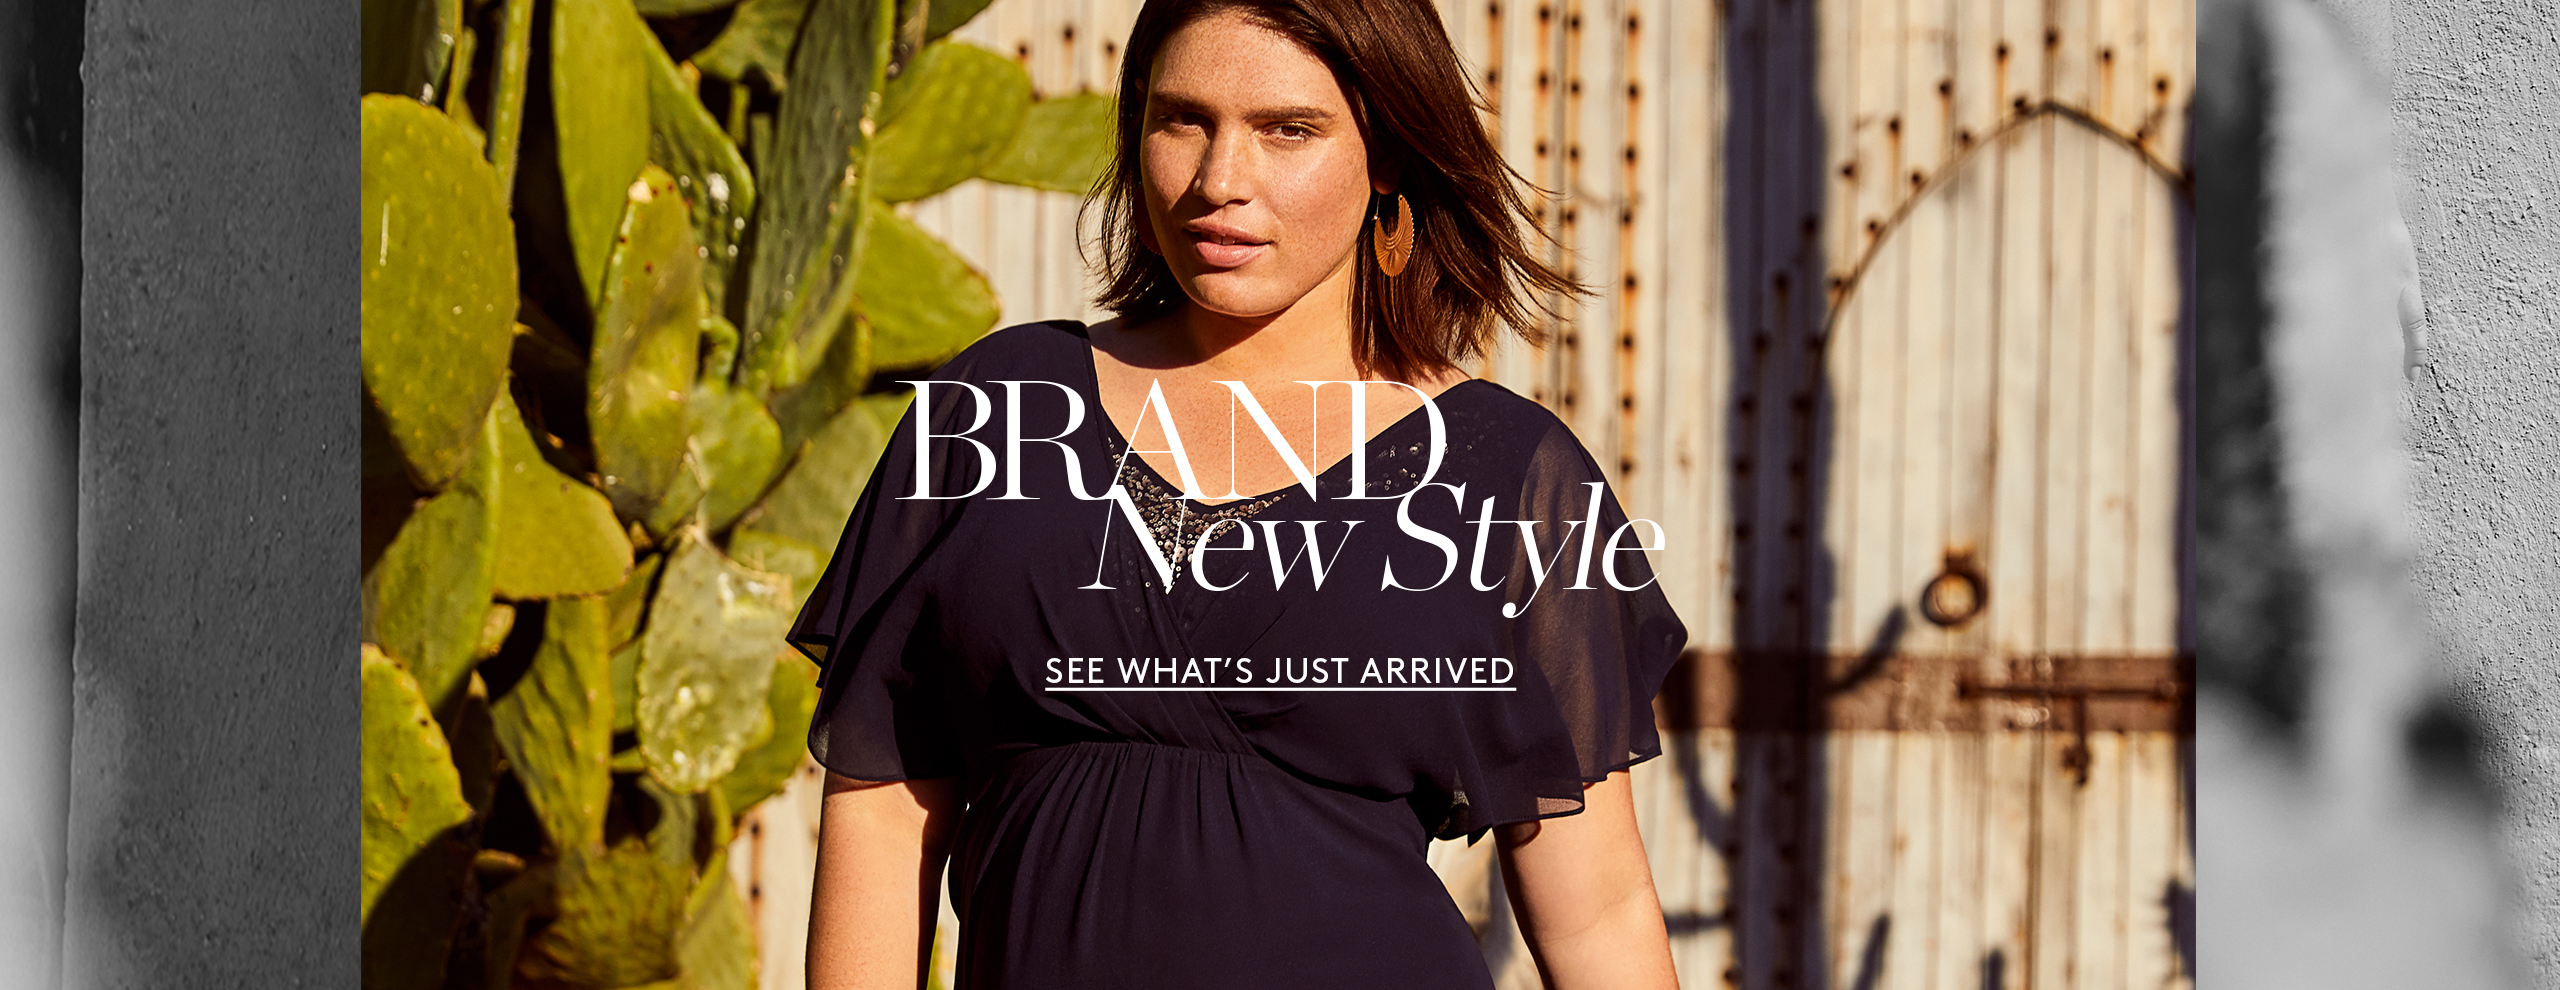 Brand New Style - See what's just arrived >